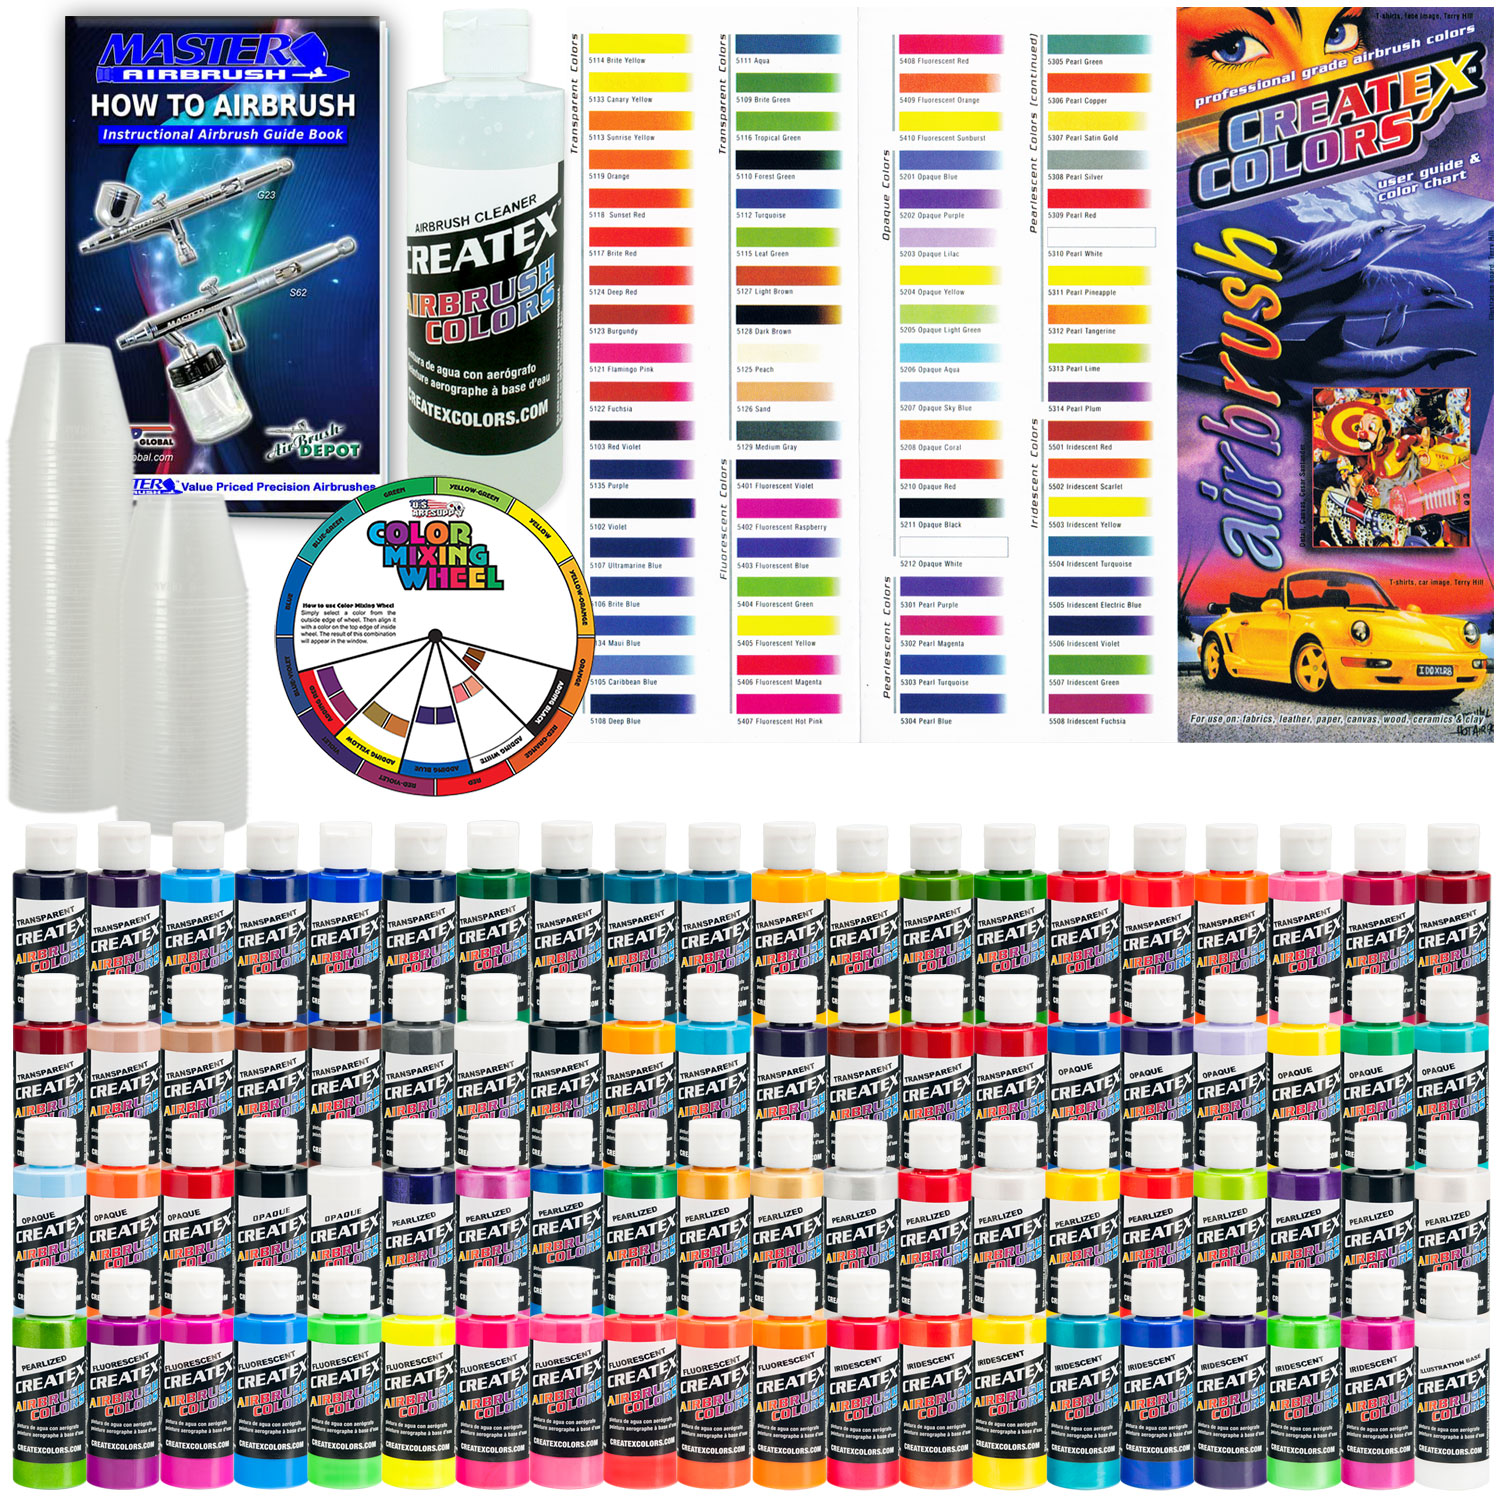 Createx DELUXE ALL 80 COLORS SET 2oz Airbrush Hobby OPAQUE TRANSPARENT Paint